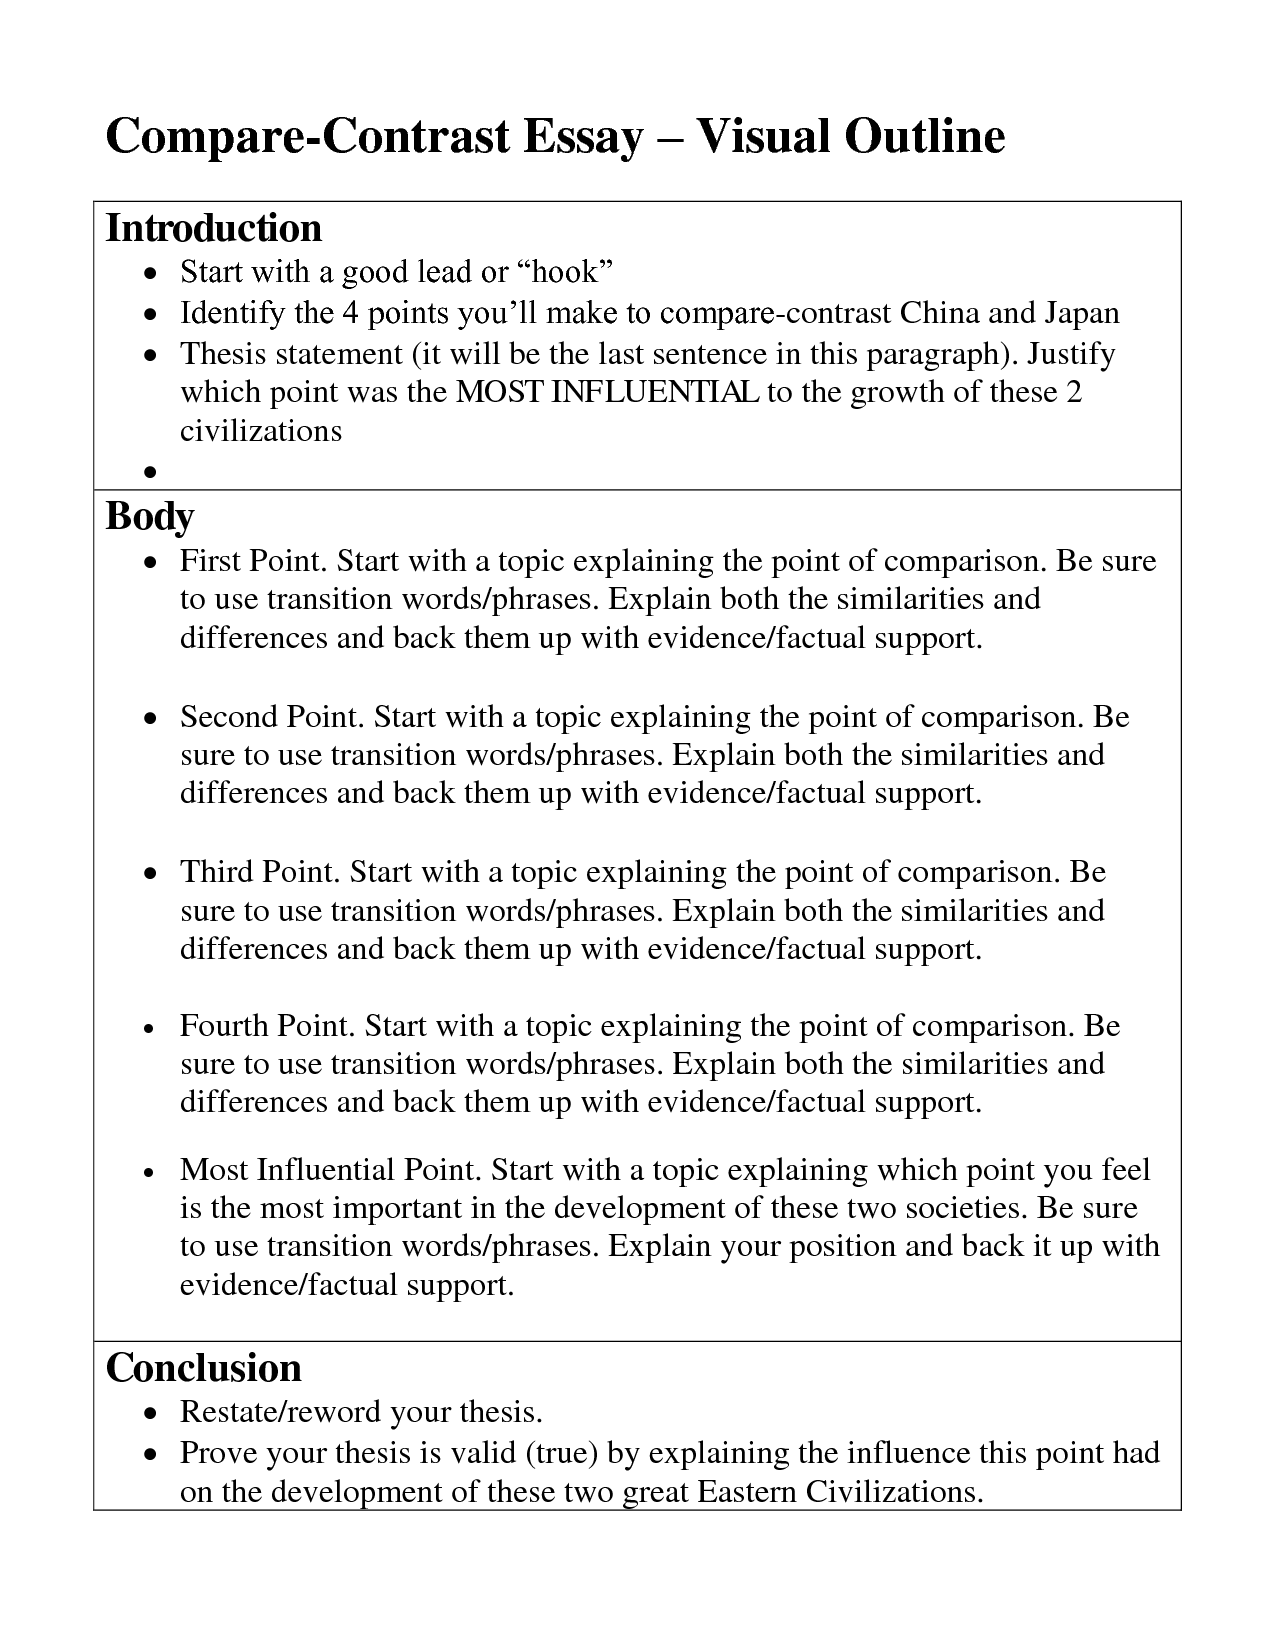 004 Comparison And Contrast Essay Outline Impressive Compare 5th Grade High School Template Full